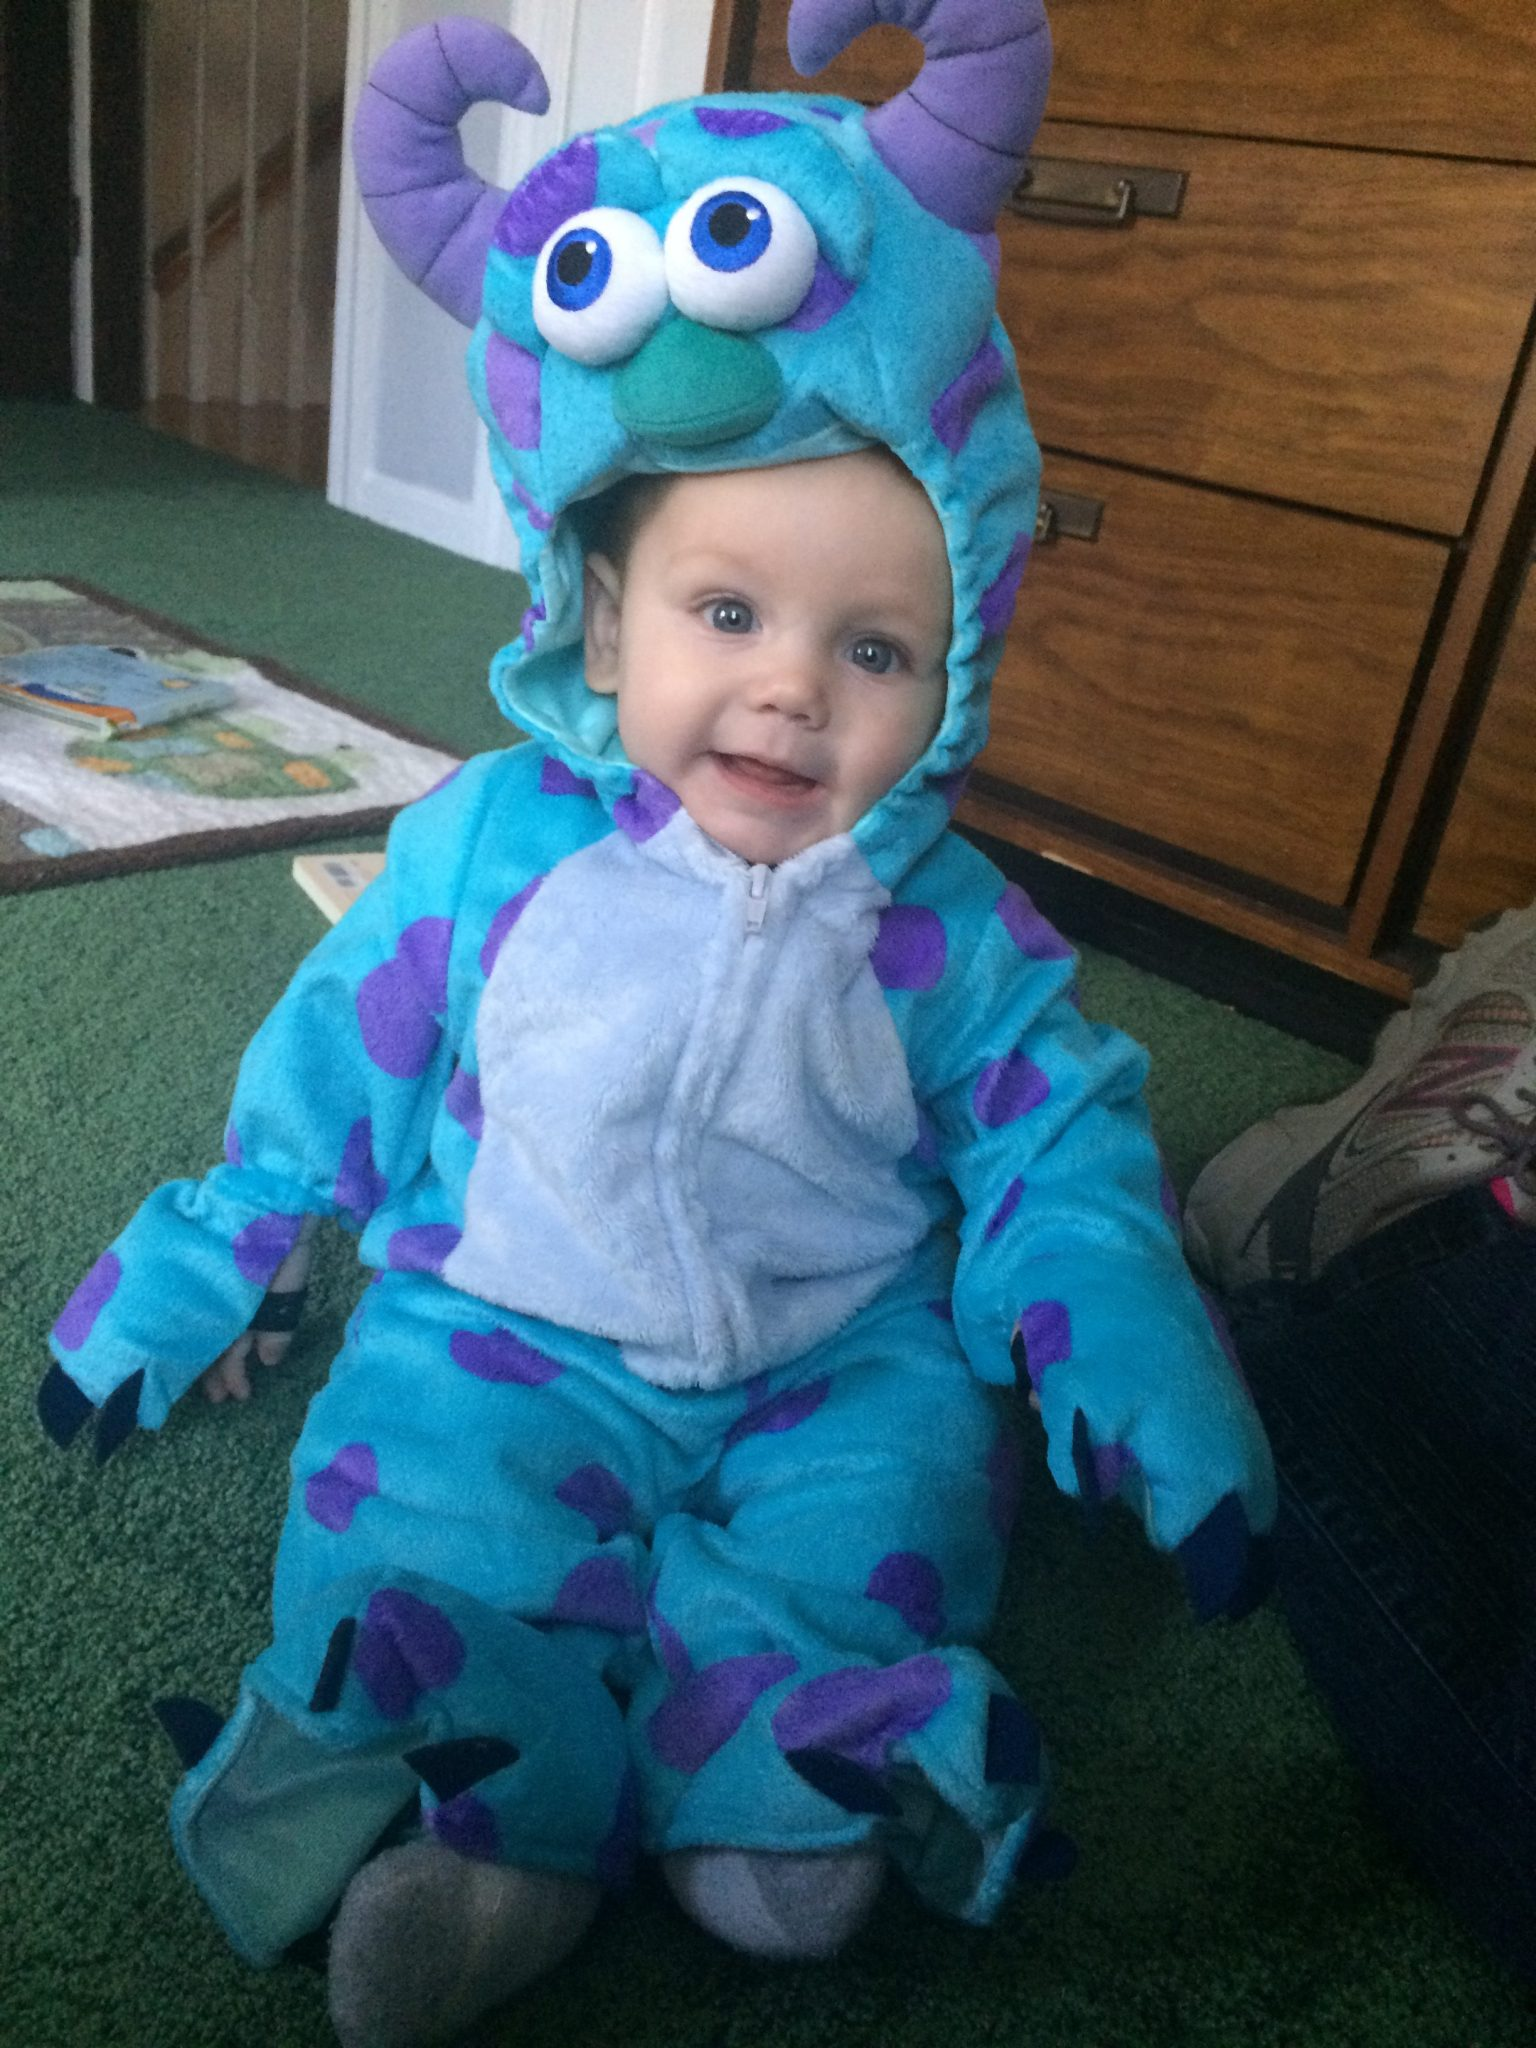 Alex in his Monsters Inc Costume